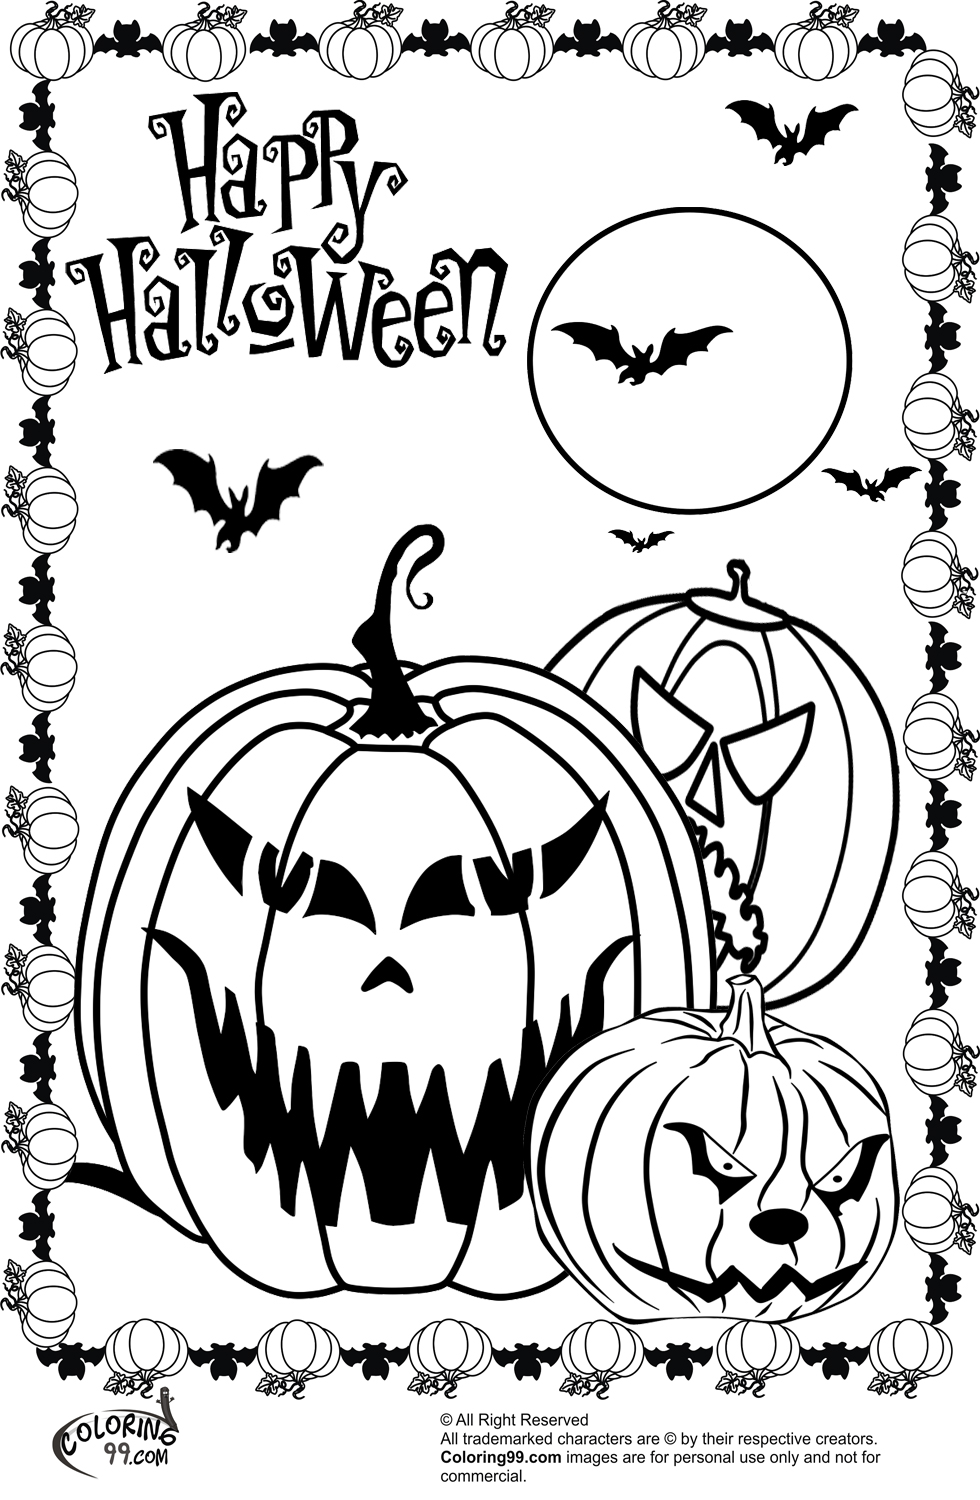 Evil Pumpkin Coloring Pages - Worksheet & Coloring Pages